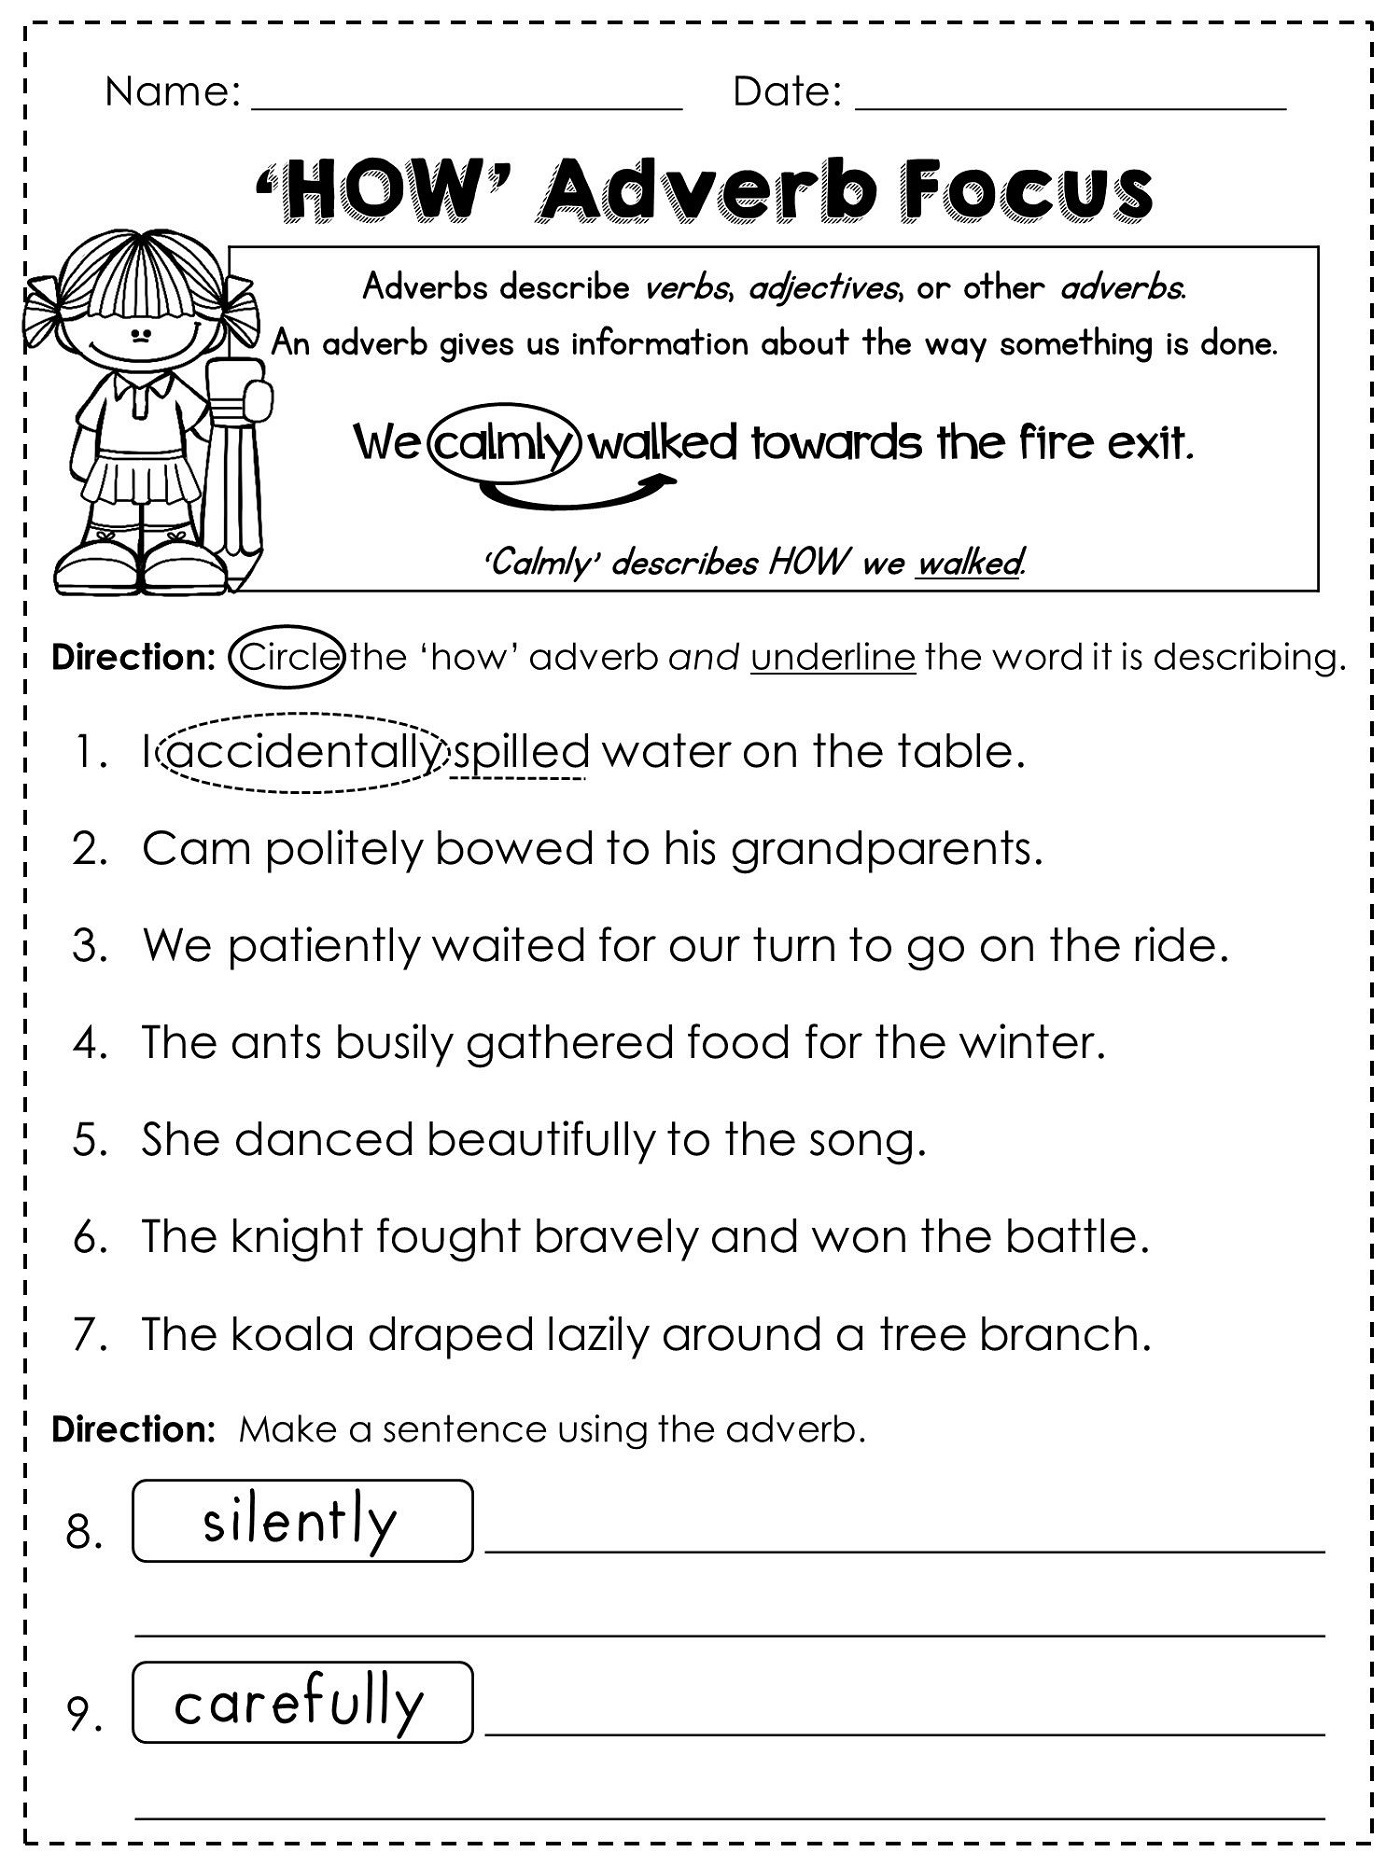 Free Grammar Worksheets Adverbs